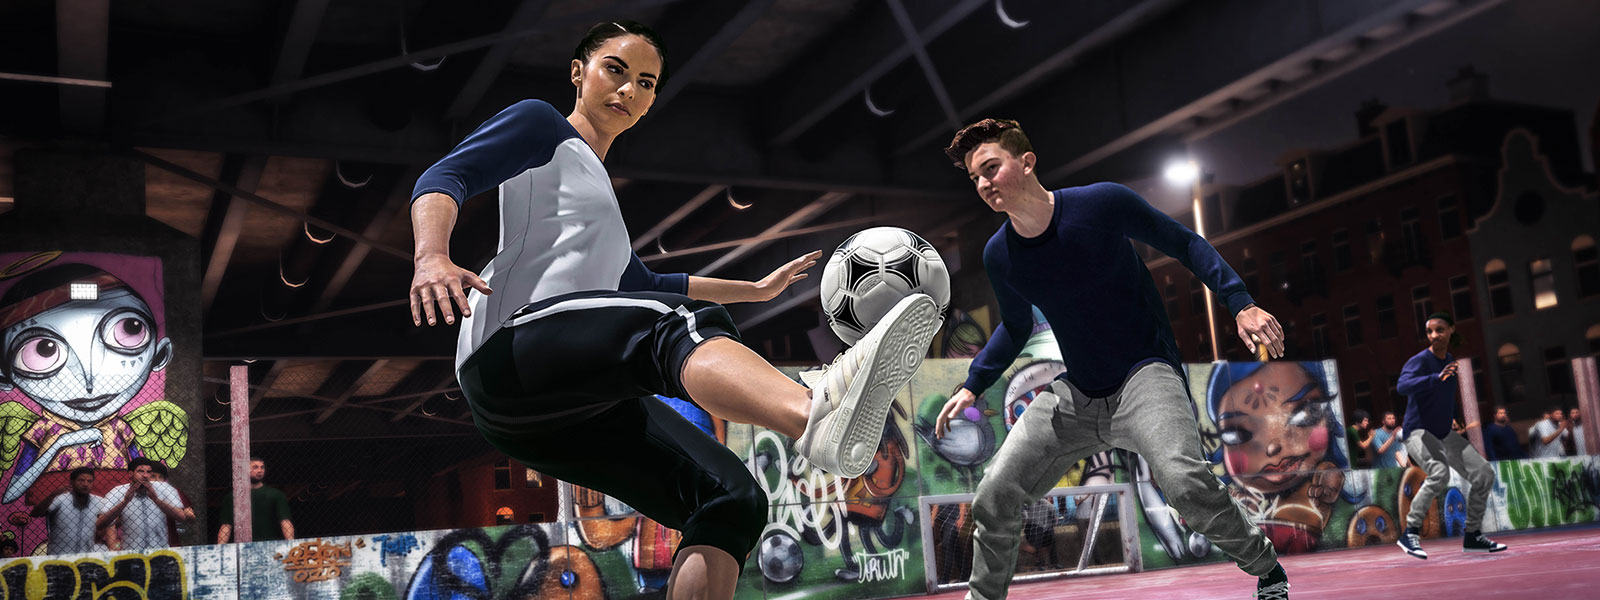 Two characters playing street football